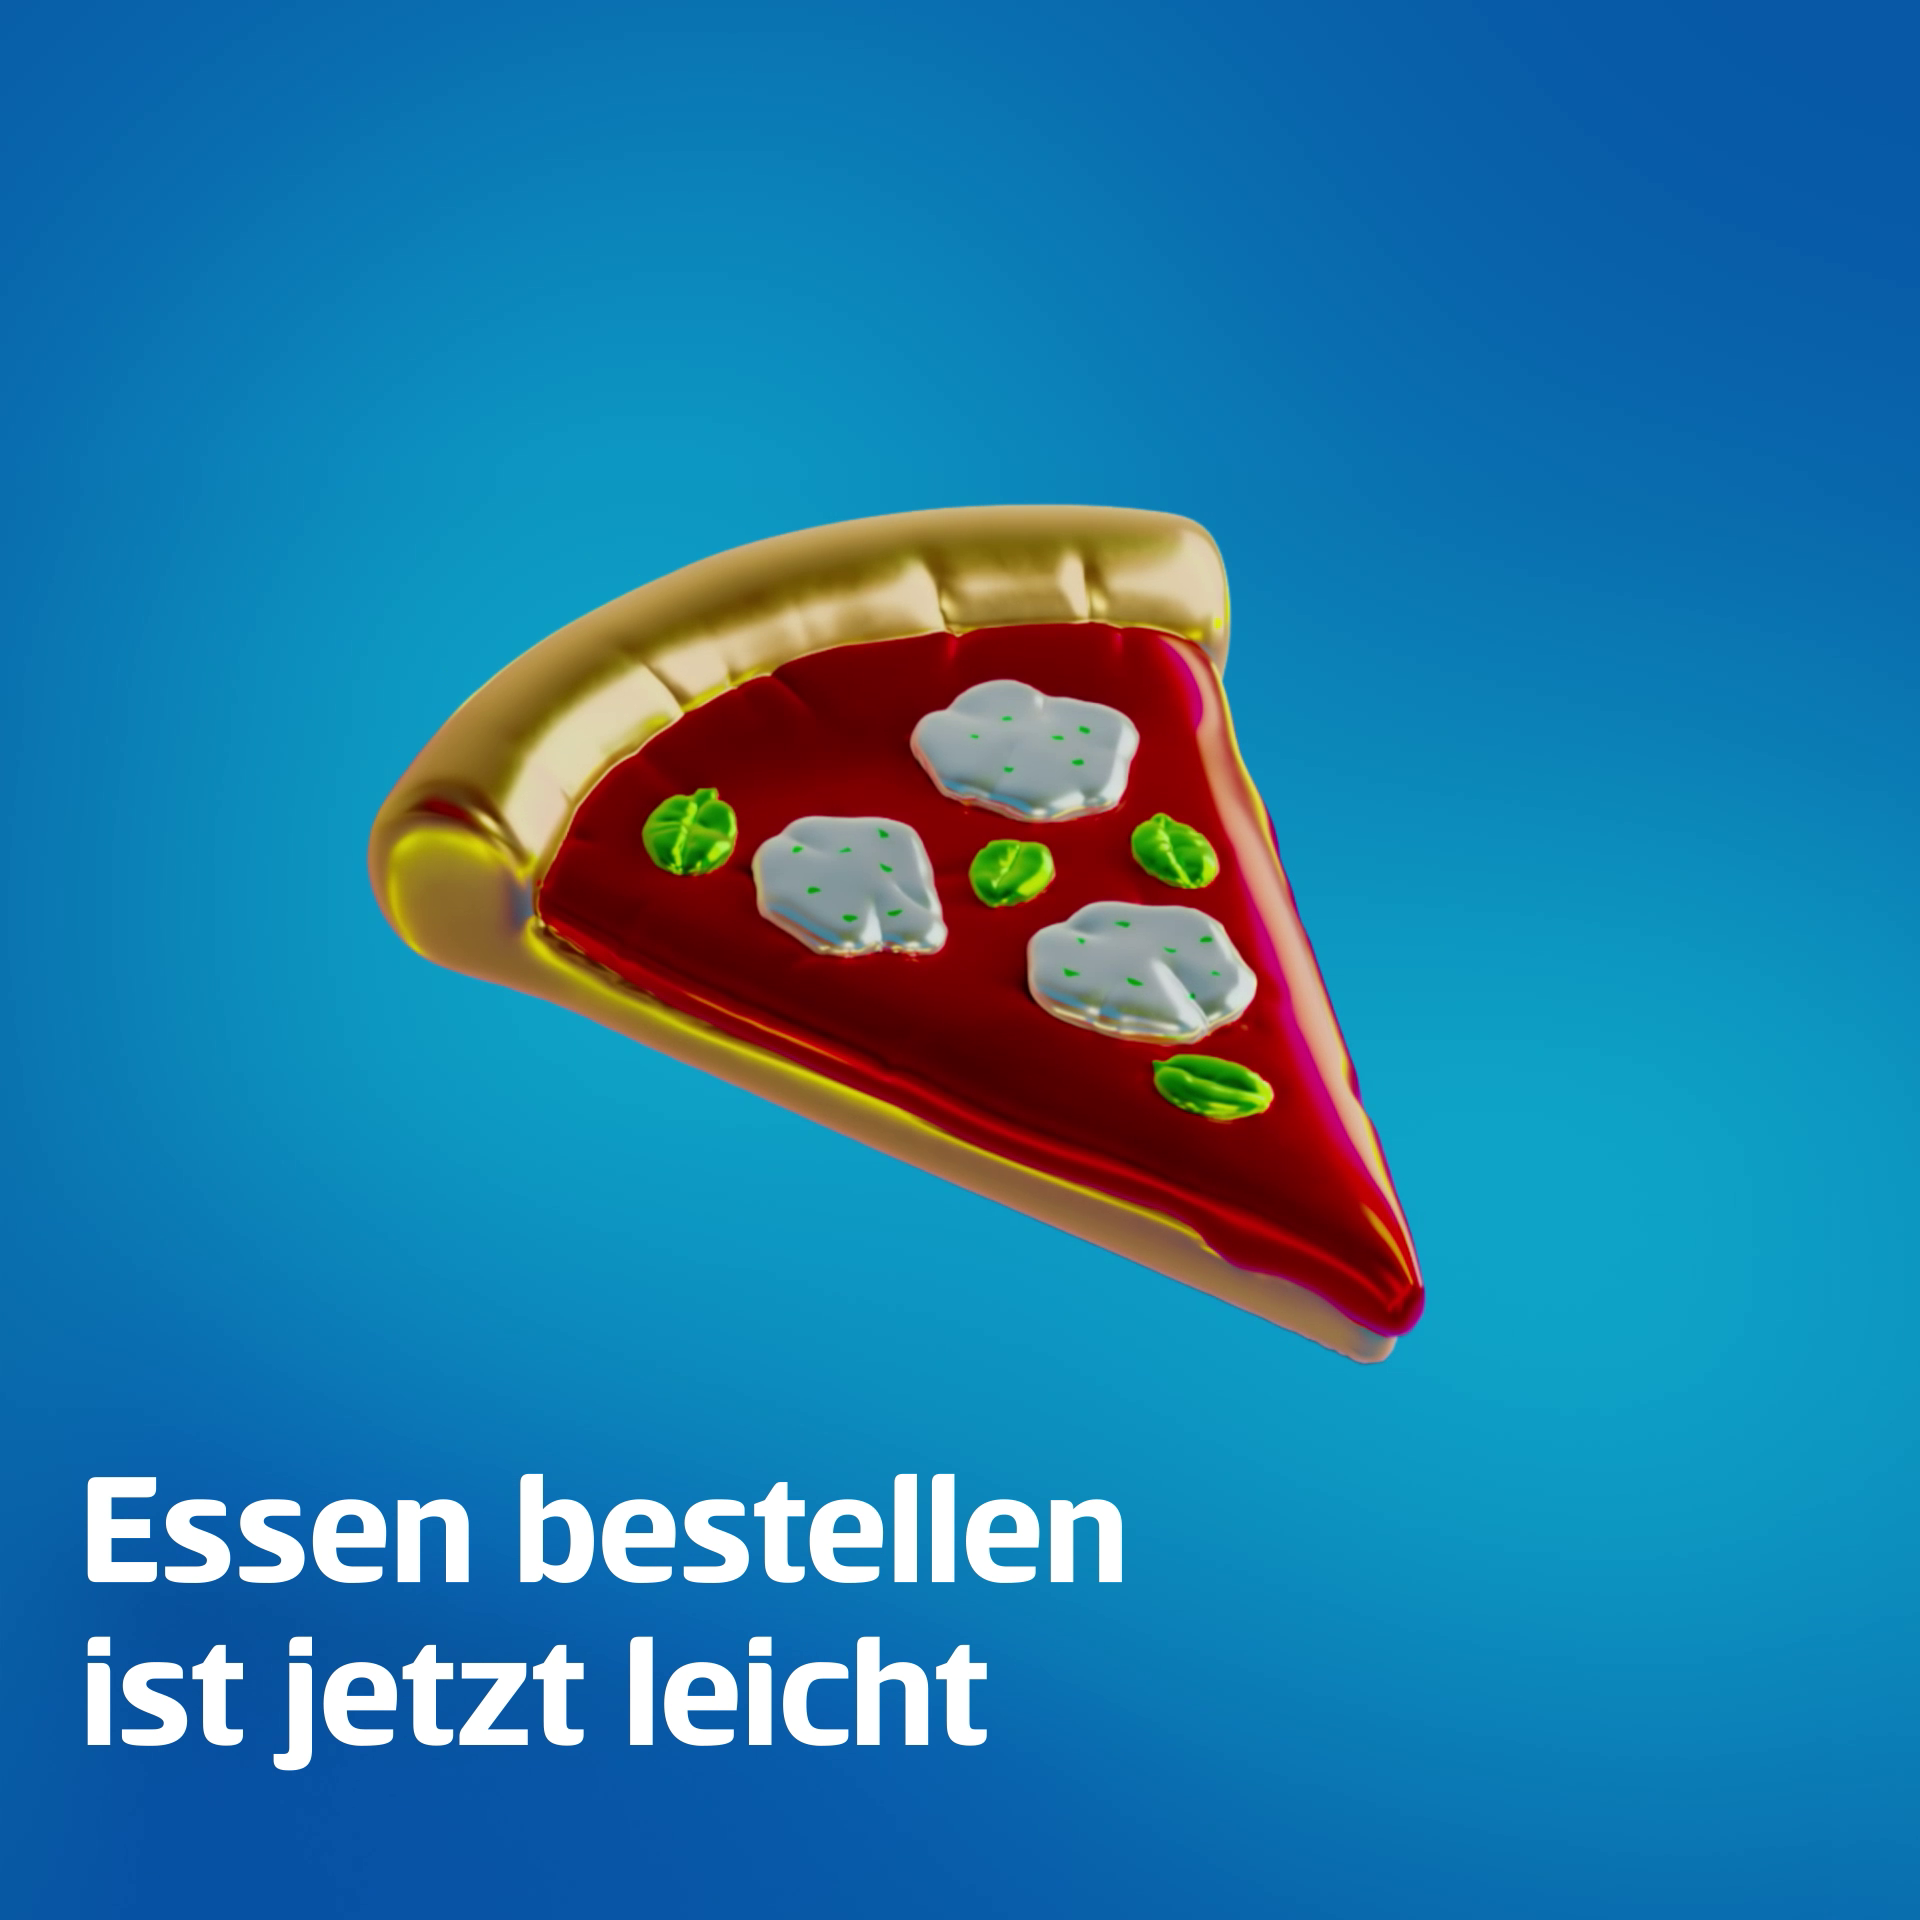 DMC_Social_Streaming_PizzaInsert_1x1